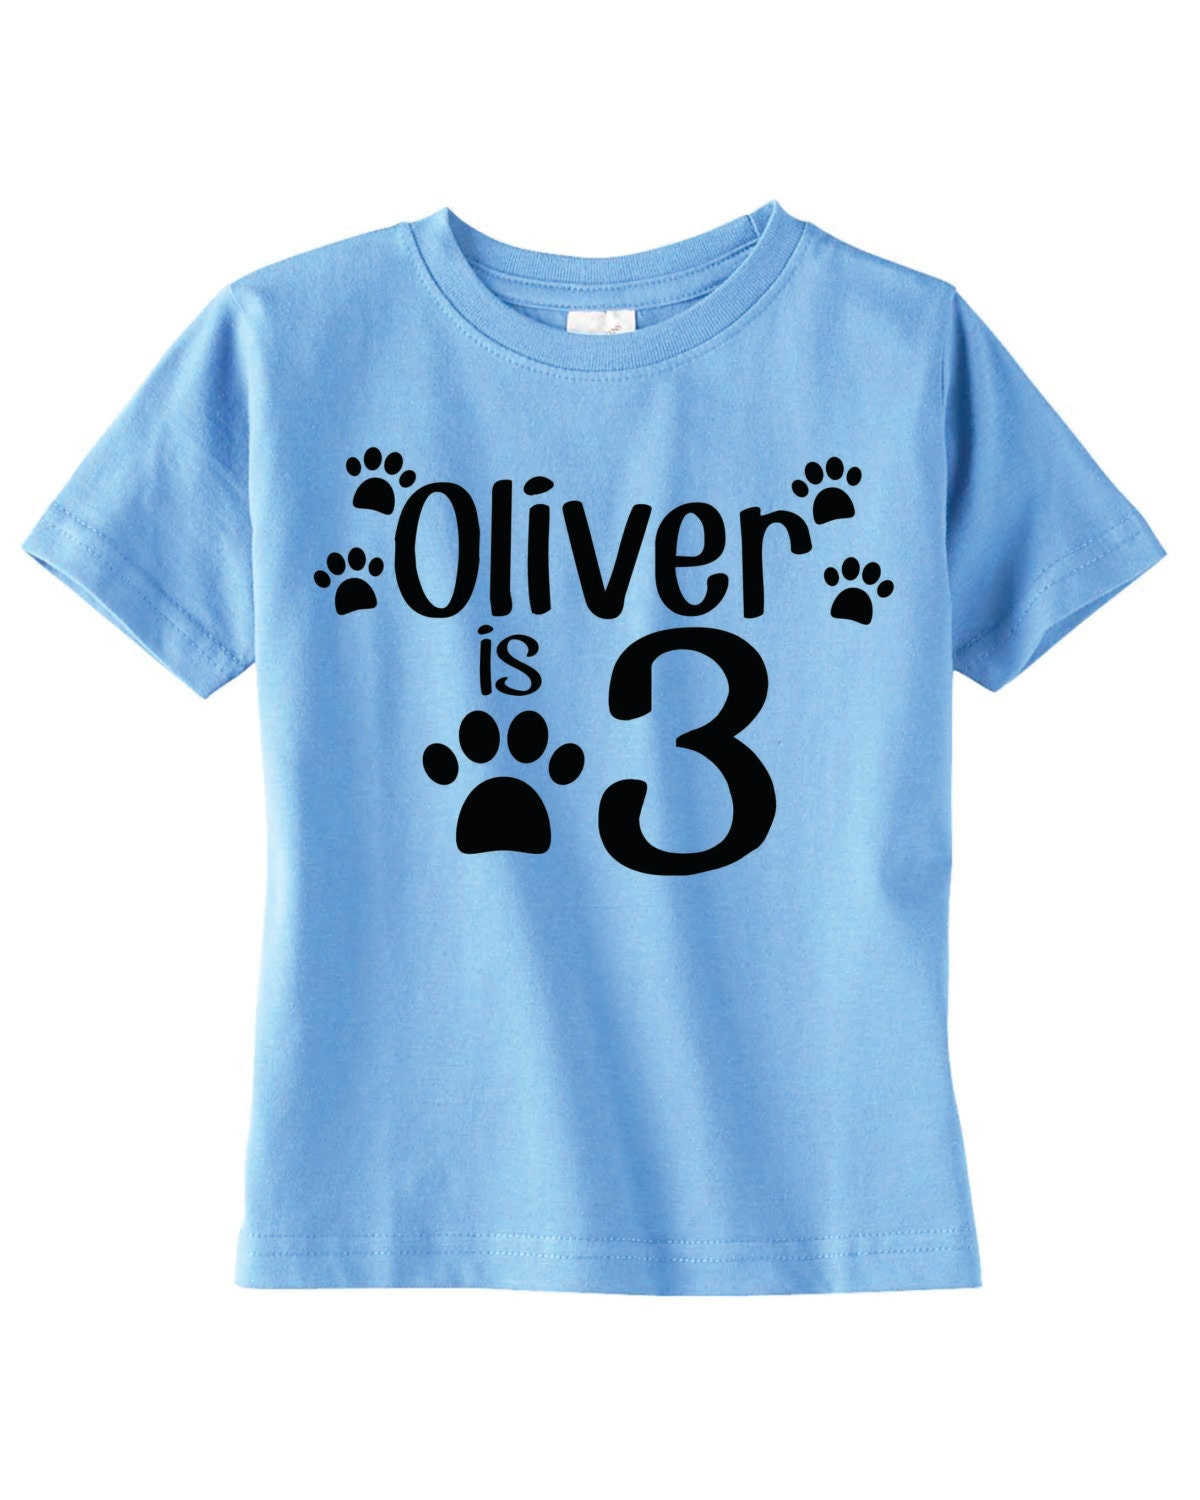 Birthday Shirt Ideas For Toddlers